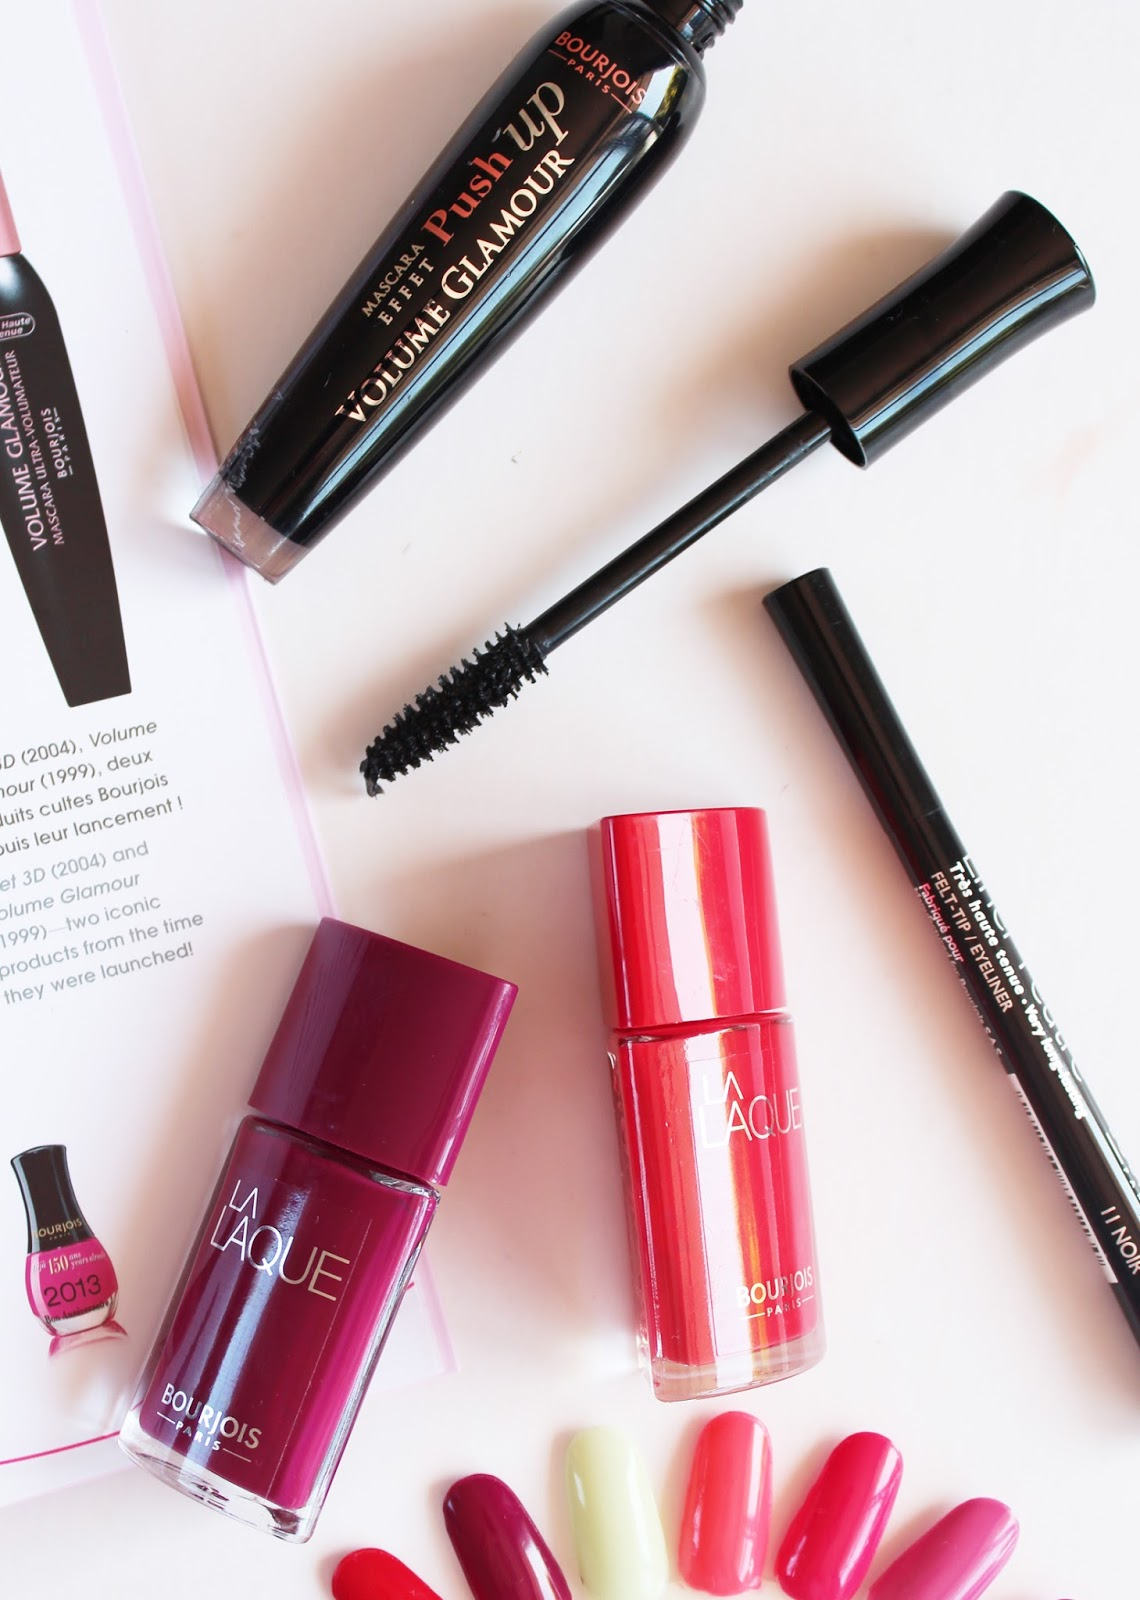 BOURJOIS PARIS | Upcoming Releases + First Impressions - Mascara, Felt Tip Liner + La Laque Polishes - CassandraMyee